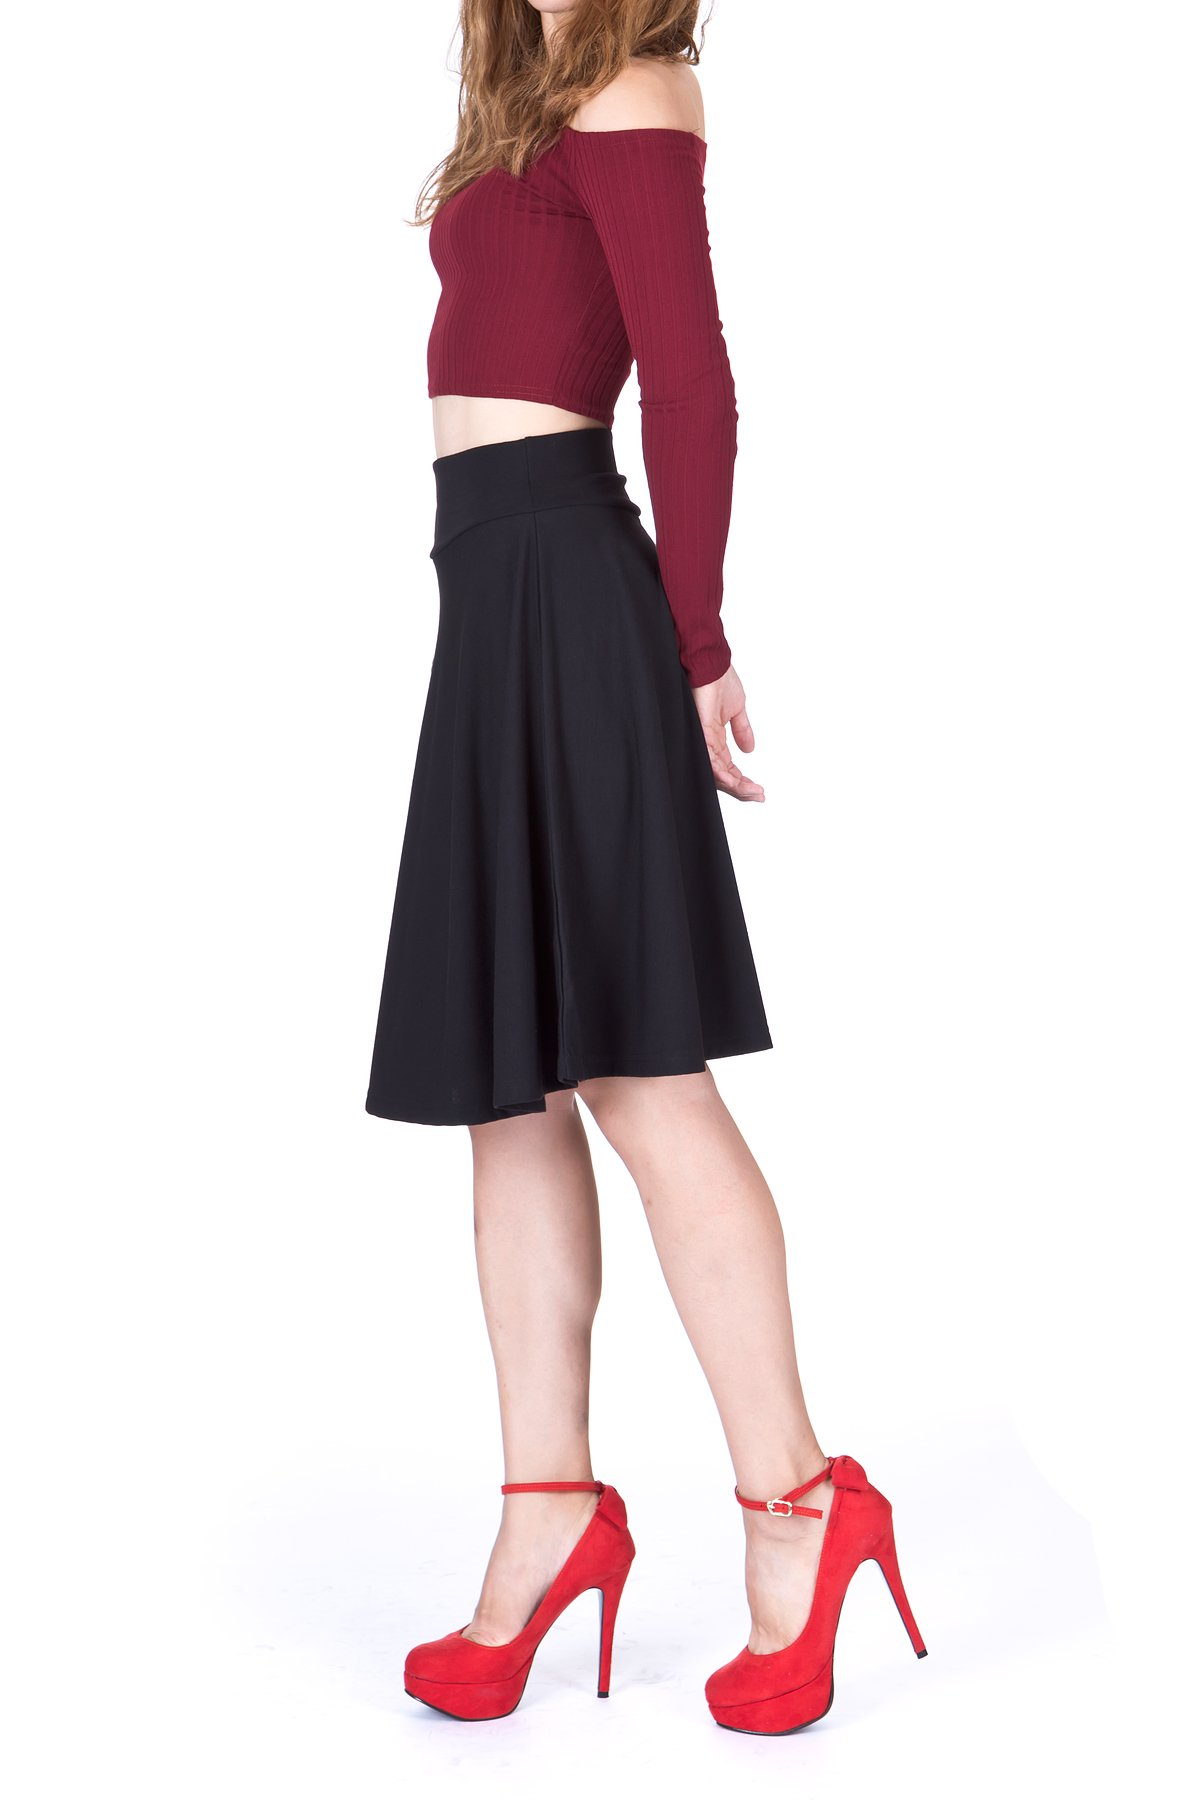 Impeccable Elastic High Waist A-line Full Flared Swing Skater Knee Length Skirt (M, Black)